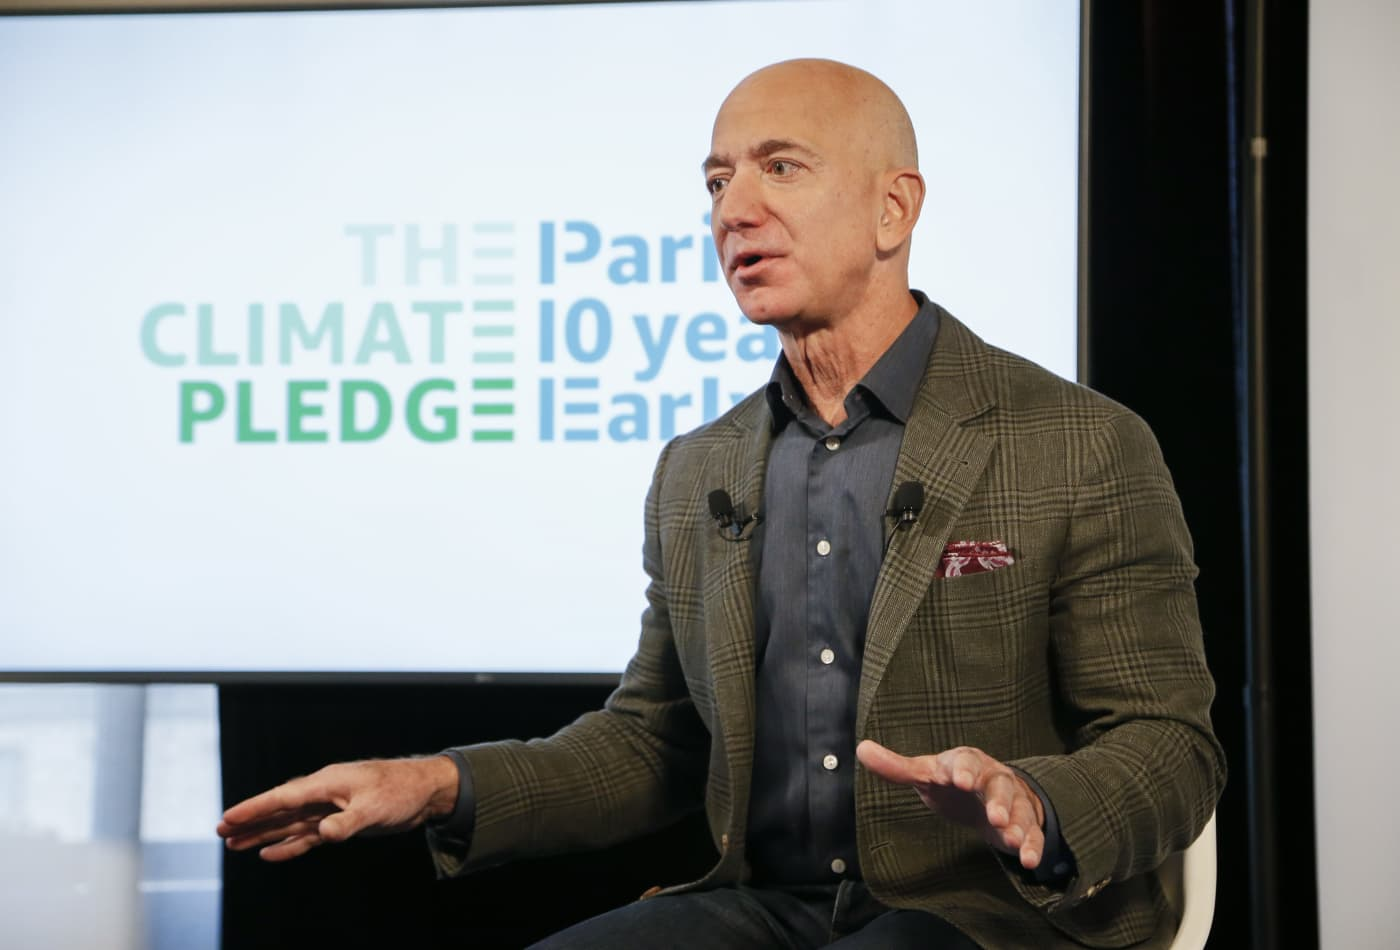 Jeff Bezos' investment into Beacon is 'personal' and not tied to Amazon, UK firm's CEO says